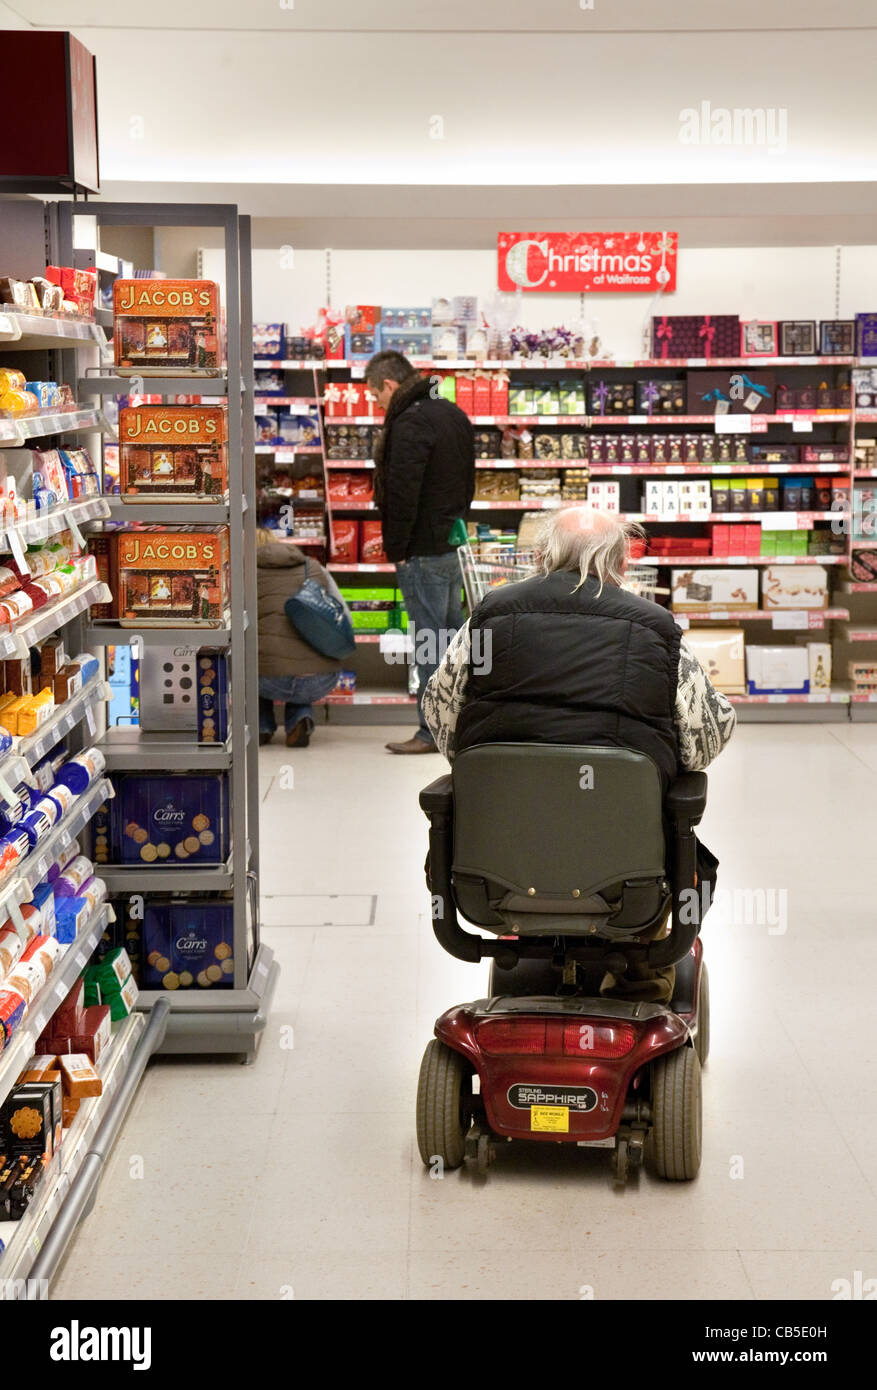 disabled man shopping on his disability scooter in a Waitrose supermarket, UK - Stock Image